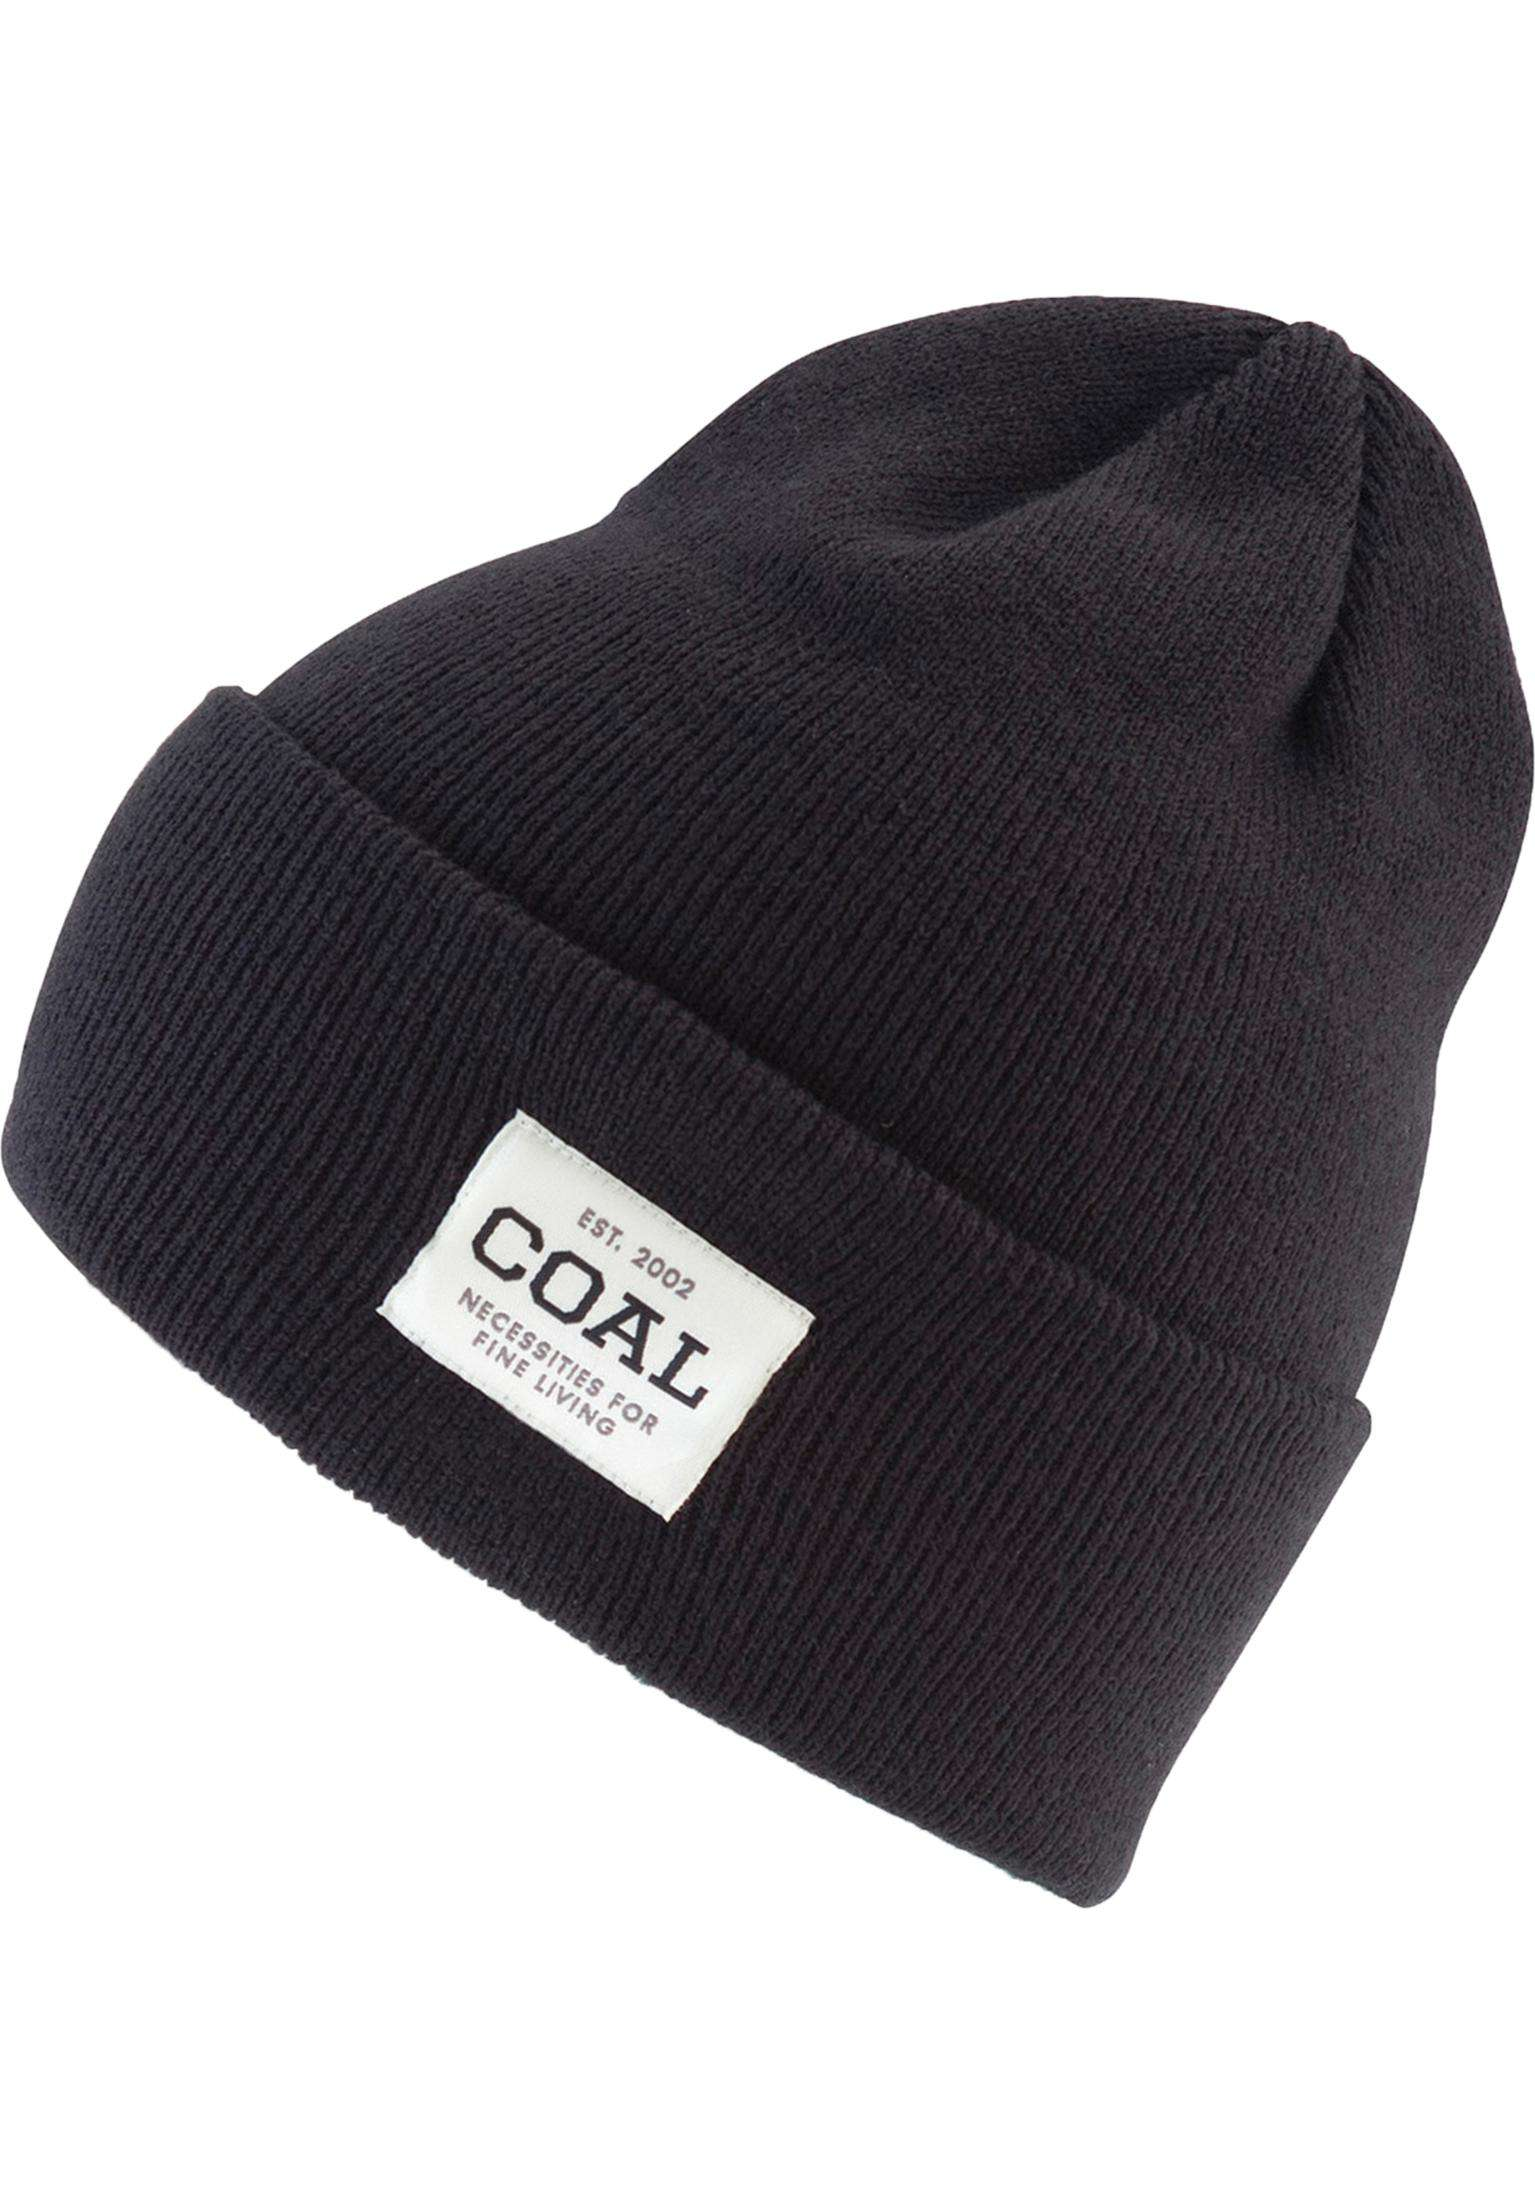 The Uniform coal Beanies in solid-black for Men  a0f80e106547